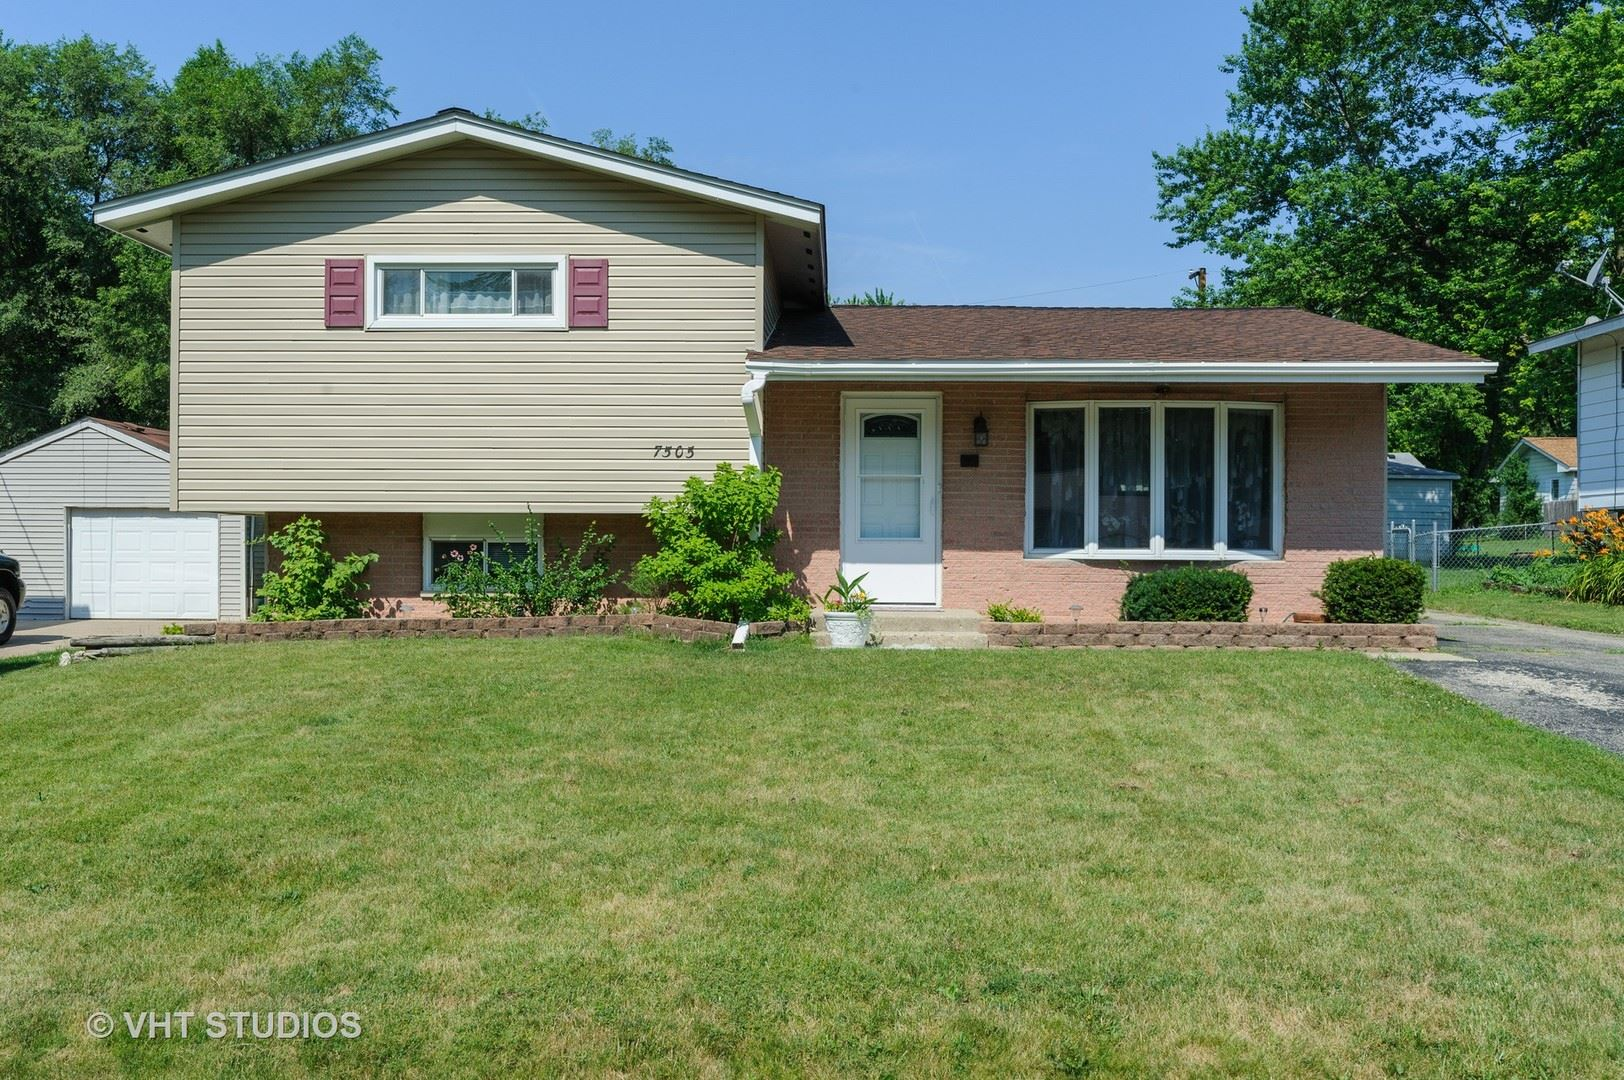 7505 Redwood Street, Crystal Lake, IL 60014 - #: 10779823